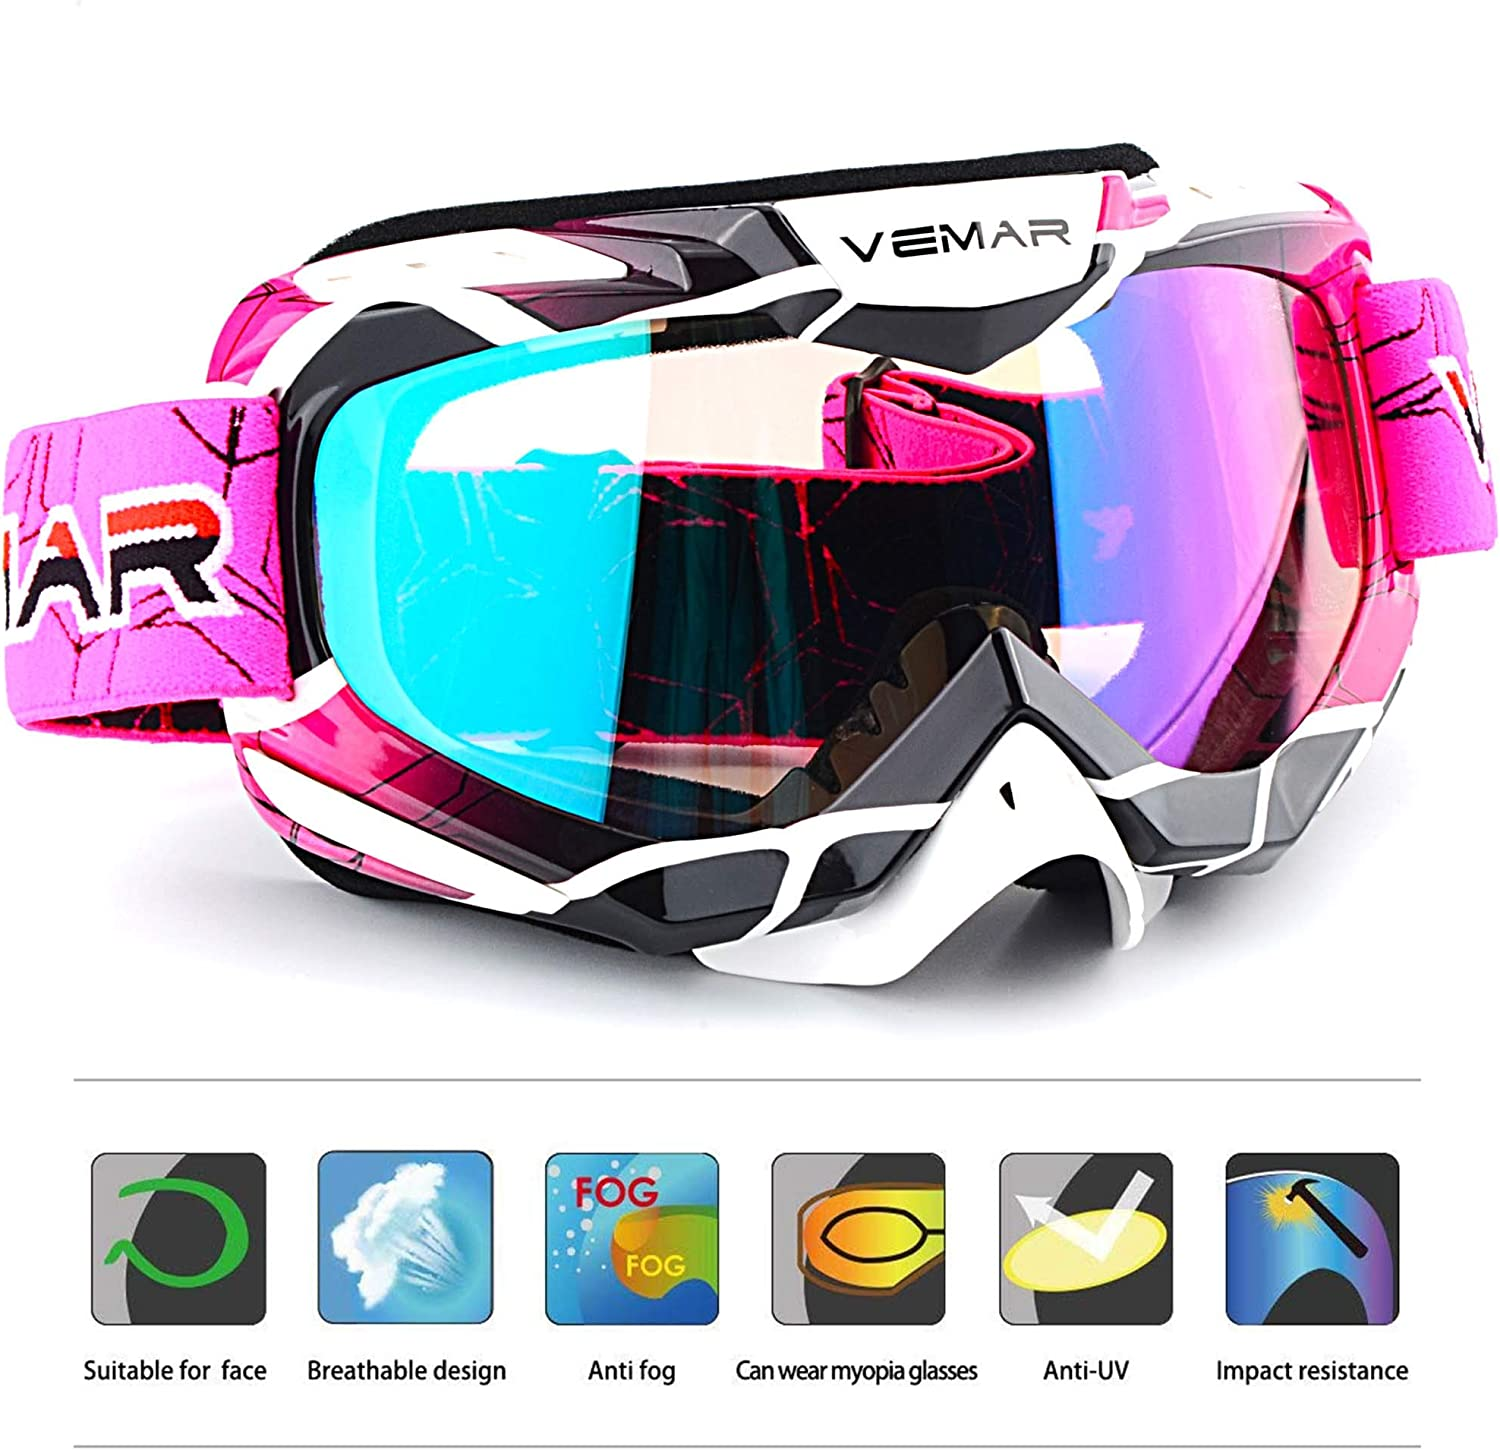 Bendable Windproof Dustproof Scratch Resistant Protective Safety Glasses Blue Polarized Sport Motorcycle Motocross Goggles ATV Racing Goggles Dirt Bike Tactical Riding Motorbike Goggle Glasses